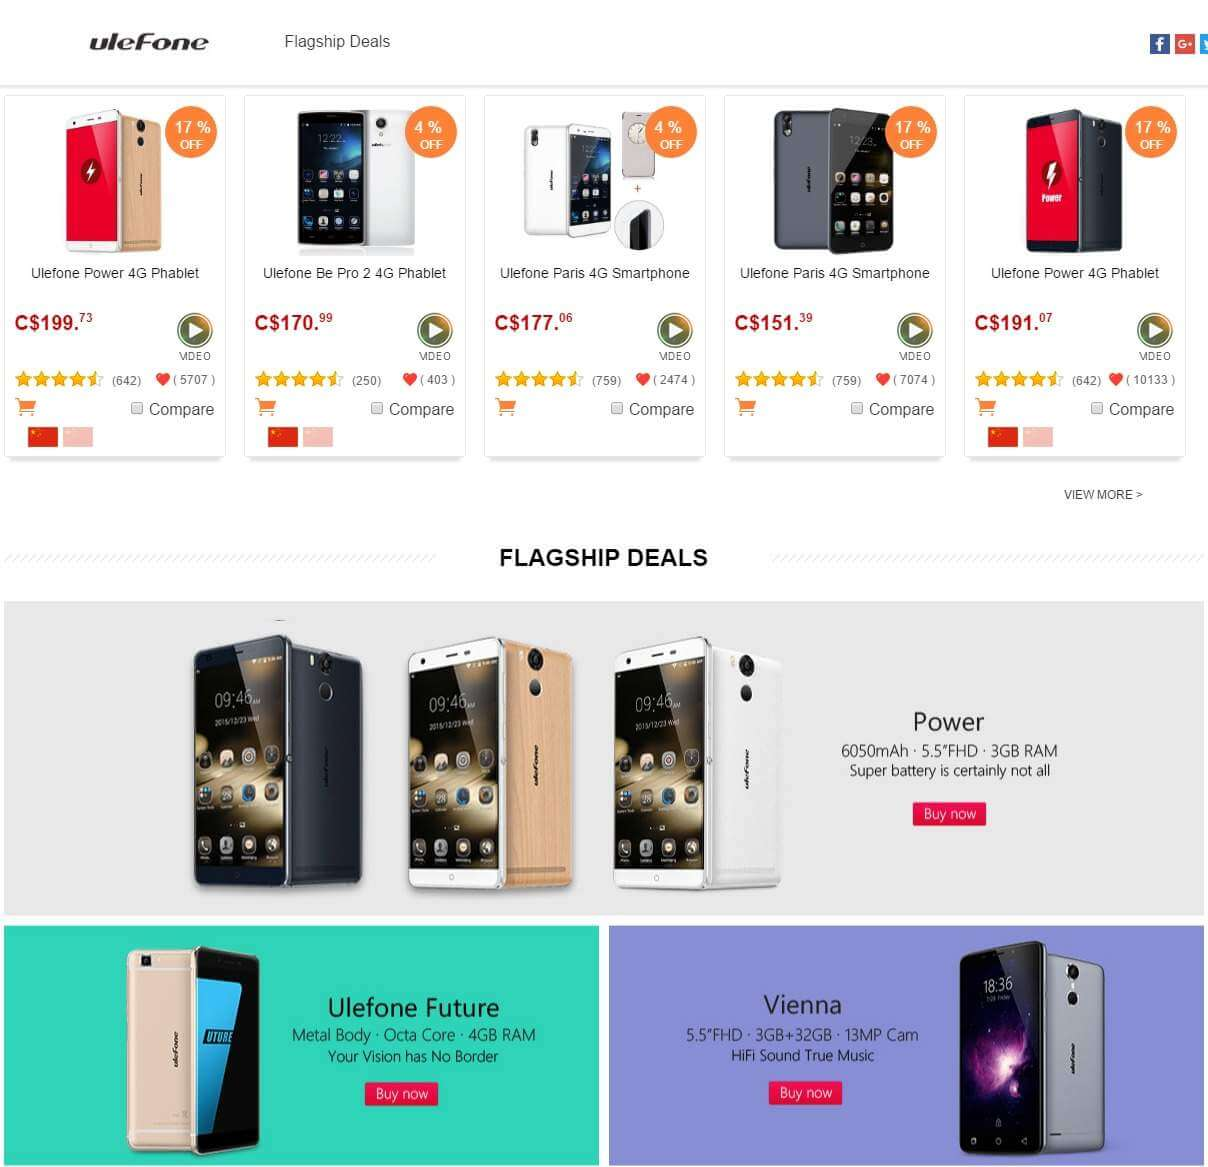 products-list-ulefone-brand-store-promotional-sale-1